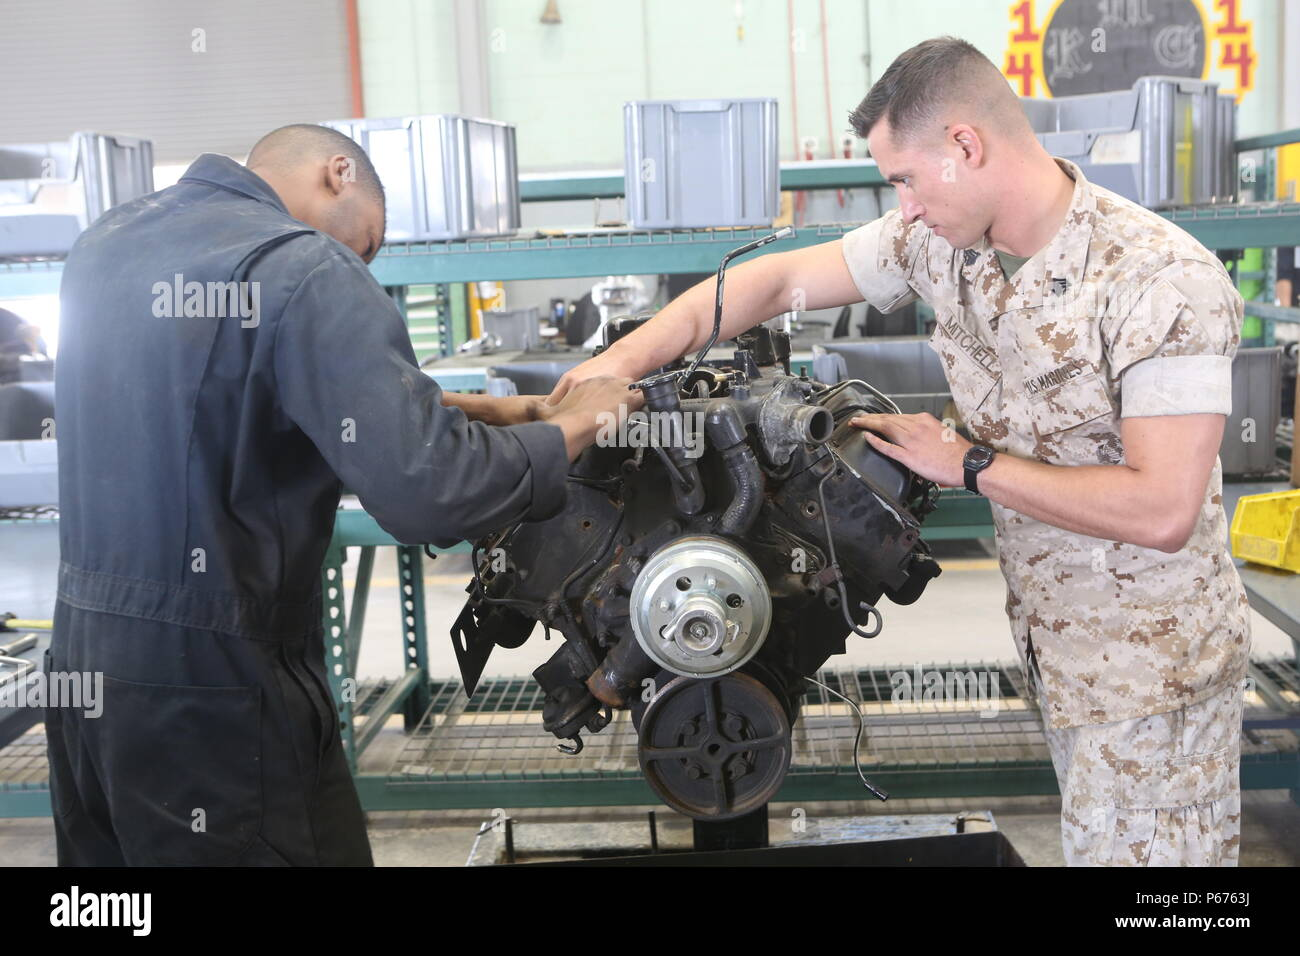 U.S. Marine Corps Cpl. Adonis Stark and Sgt. Phillip Mitchell with Combat Logistics Regiment (CLR) 15, Repairable Maintenance Company, work together to repair a 6.5L Turbo Diesel Engine during a Marine Logistics Group (MLG) Day event on Camp Pendleton, Calif., May 18, 2016. The purpose of MLG Day is to showcase the capabilities of the 1st MLG to new officers and international military visitors.(U.S. Marine Corps photo by Lance Cpl. Salmineo Sherman Jr. Combat Camera 1st MLG/ RELEASED) - Stock Image